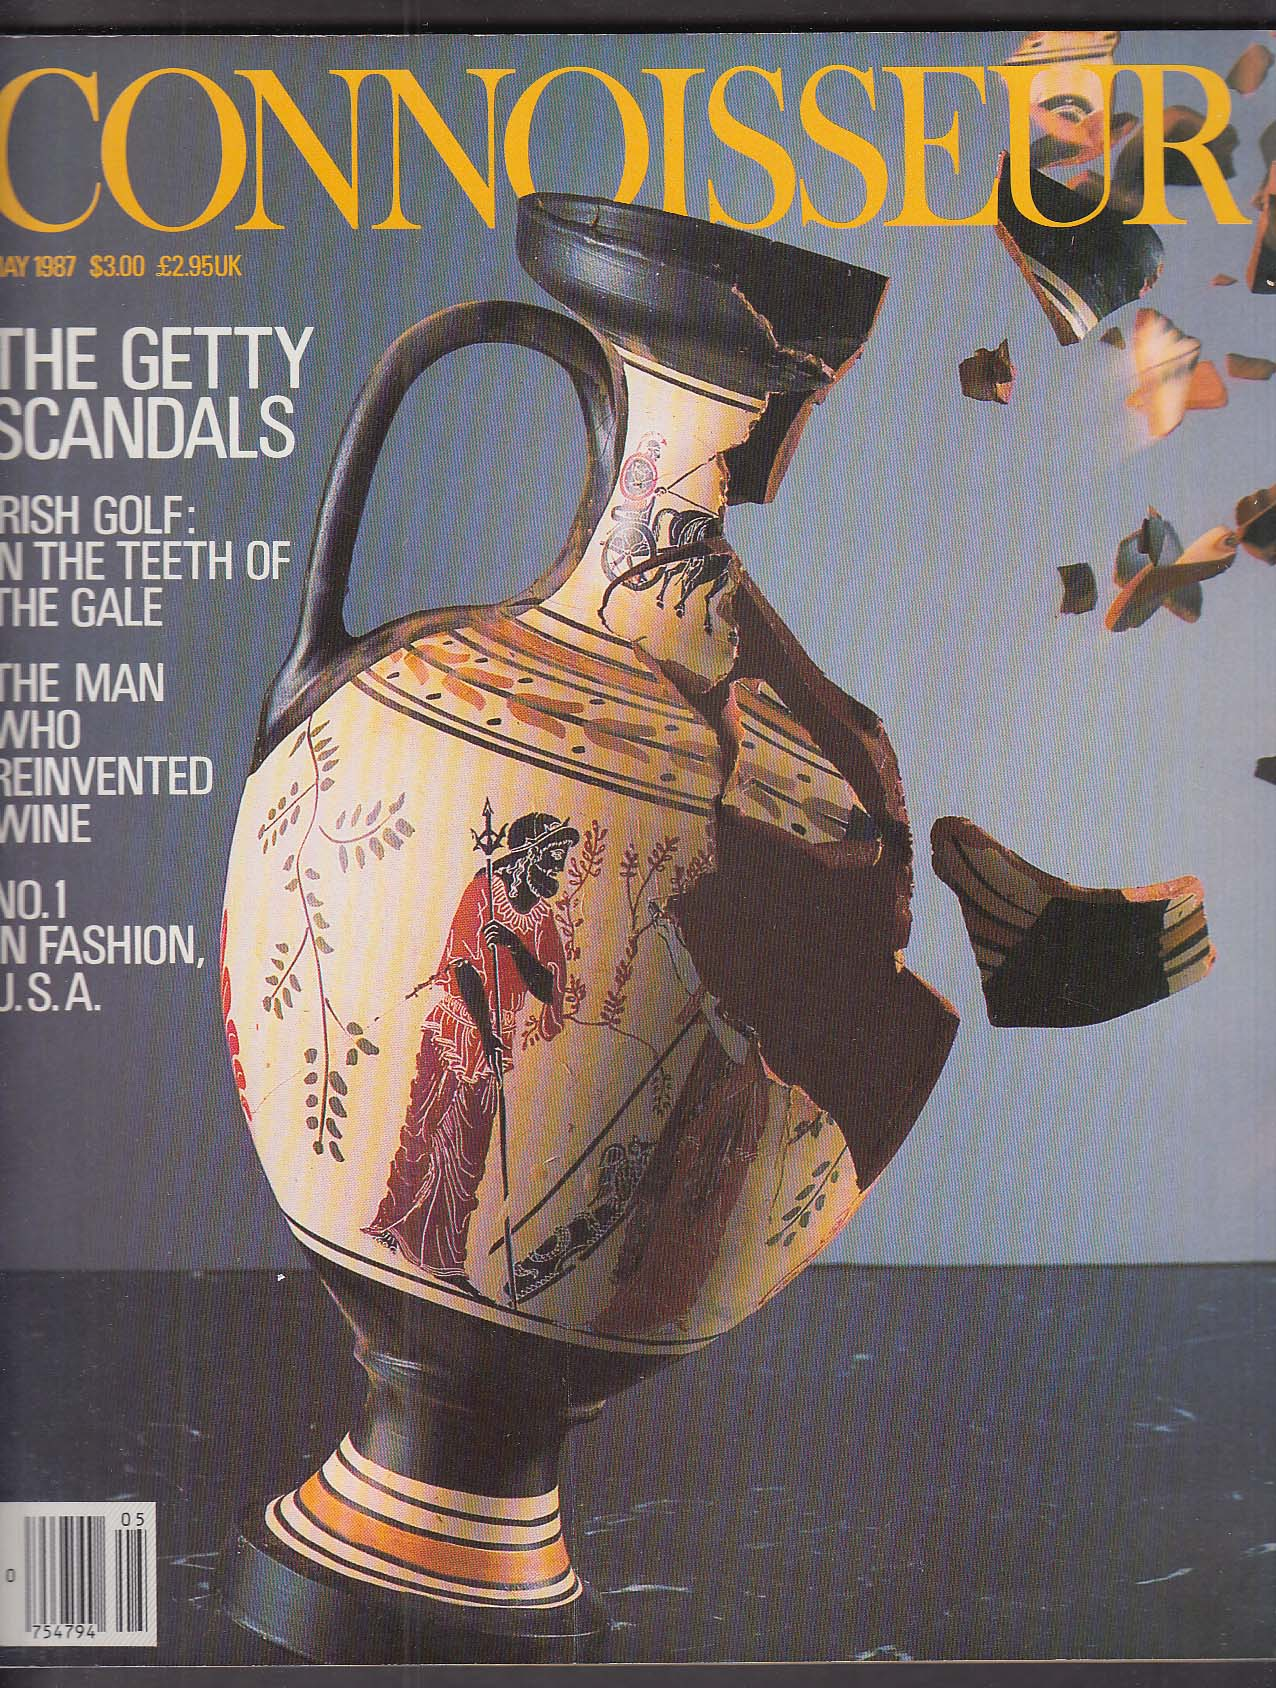 Image for CONNOISSEUR Geoffrey Beene Irish golf Getty Scandals Ahdras Schiff 5 1987